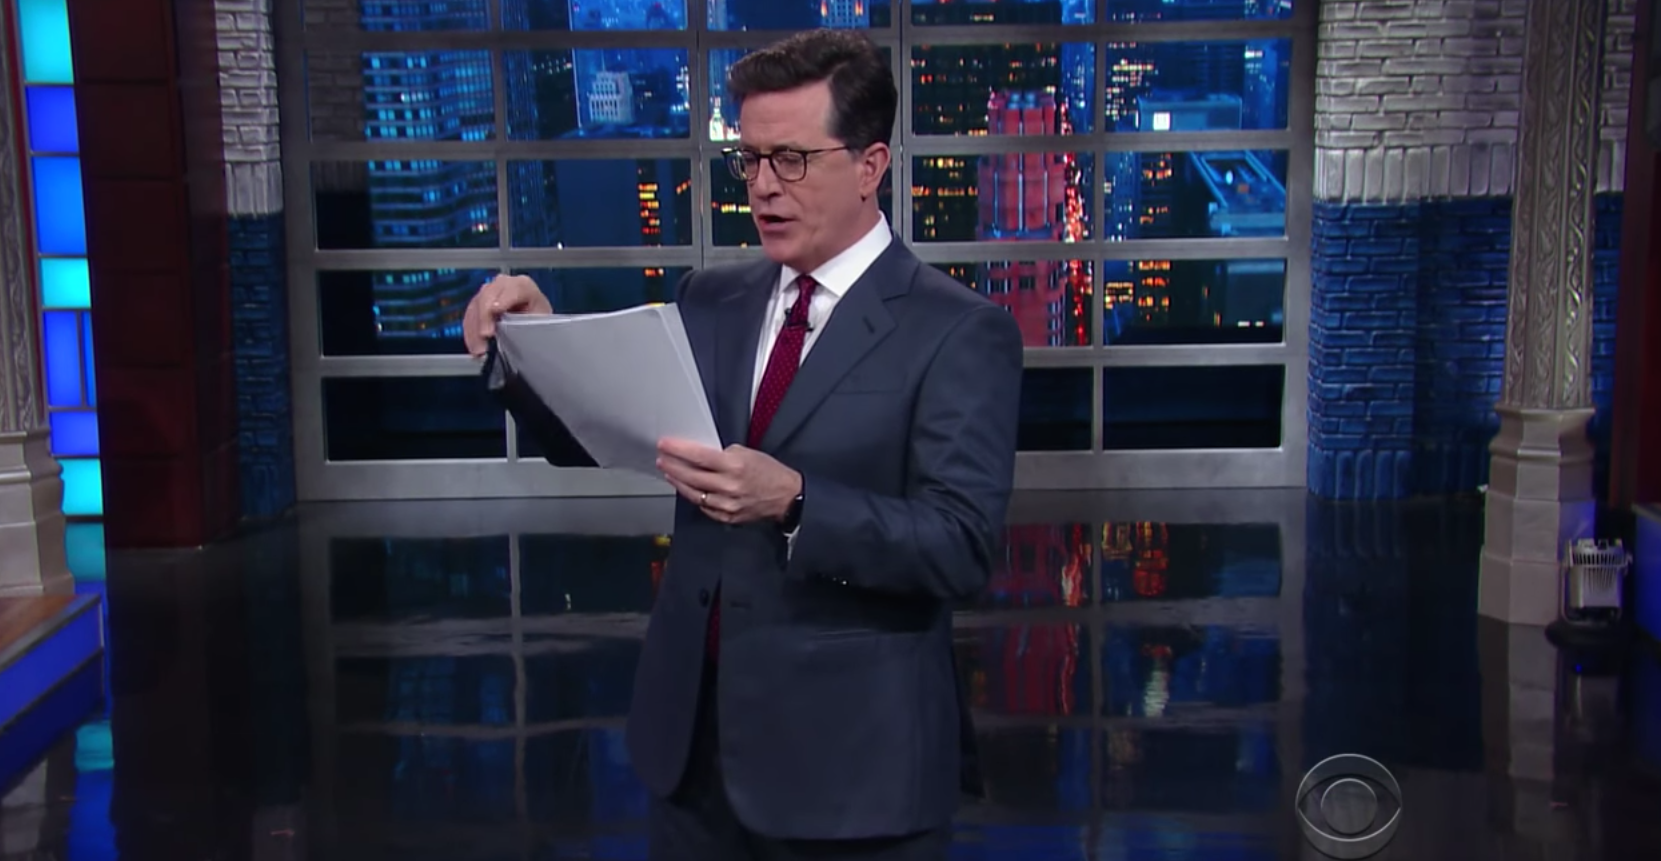 FCC Looking Into Complaints About Stephen Colbert's Anti-Trump Jokes